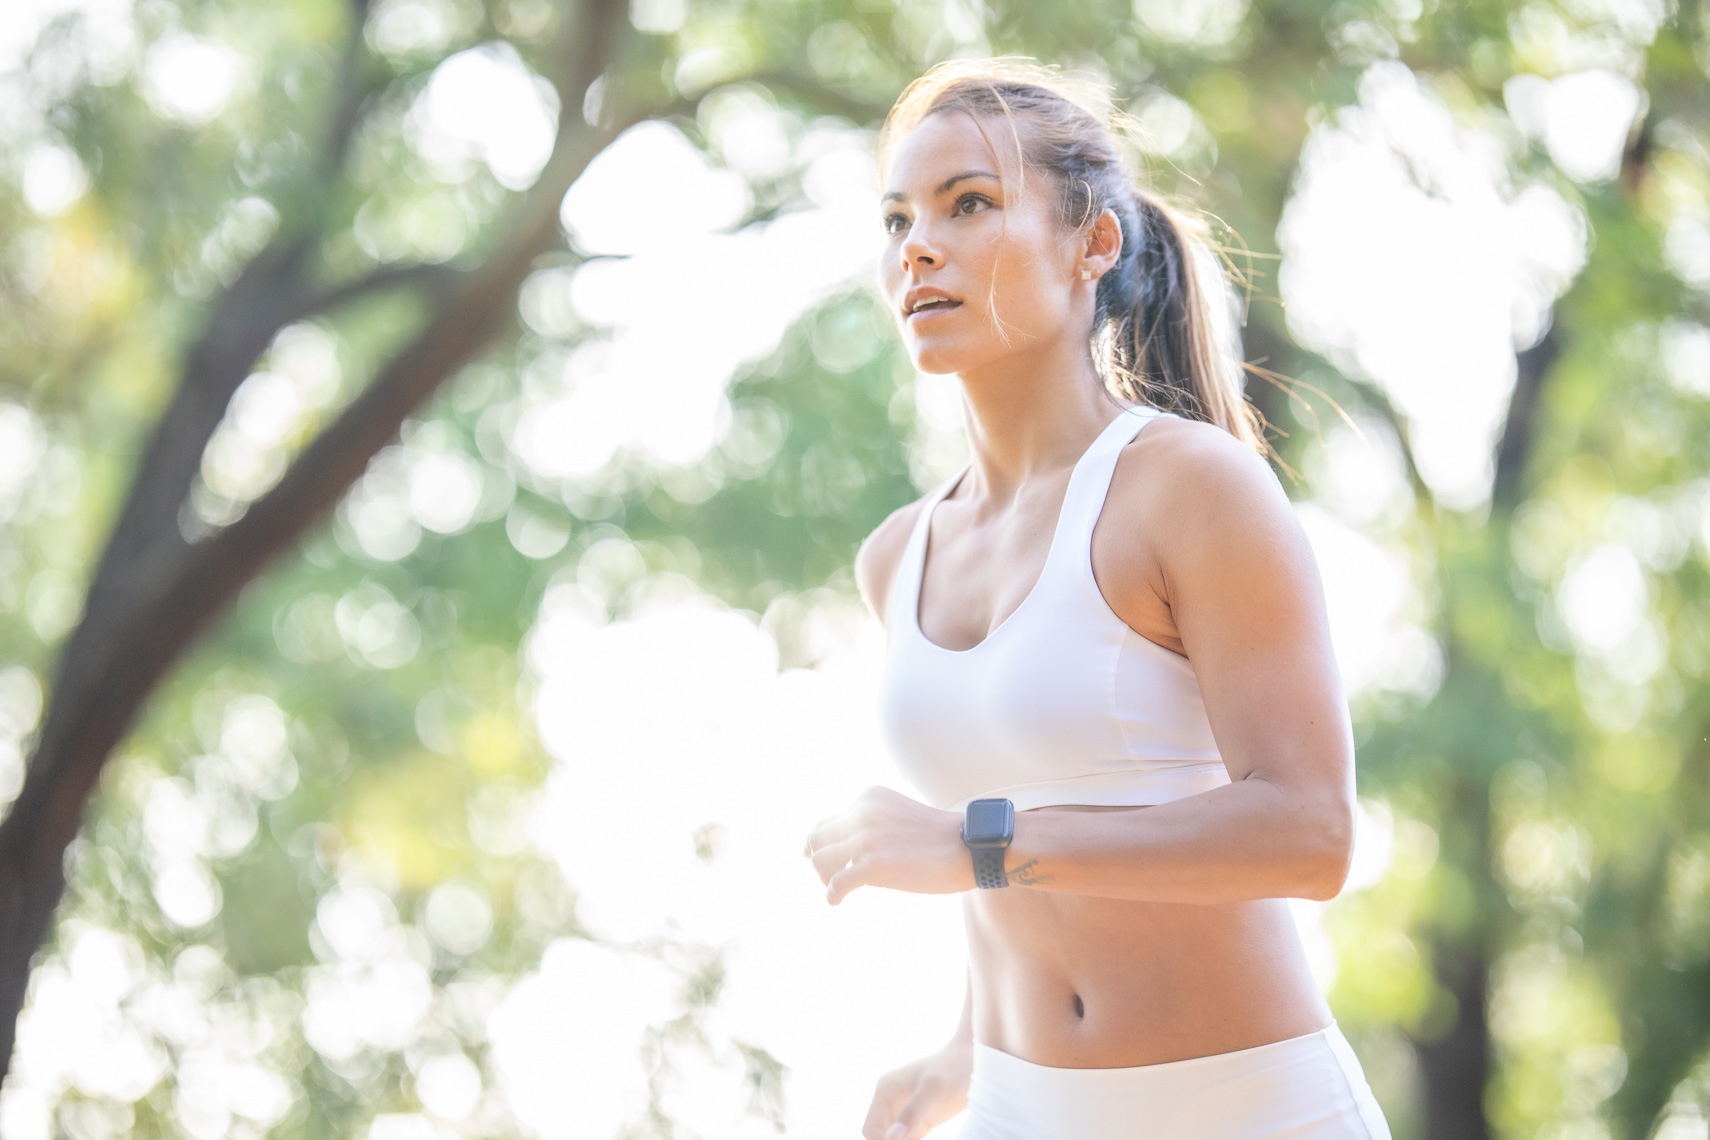 Woman trail running on wooded trail in white sportswear by health and fitness photographer Robert Houser